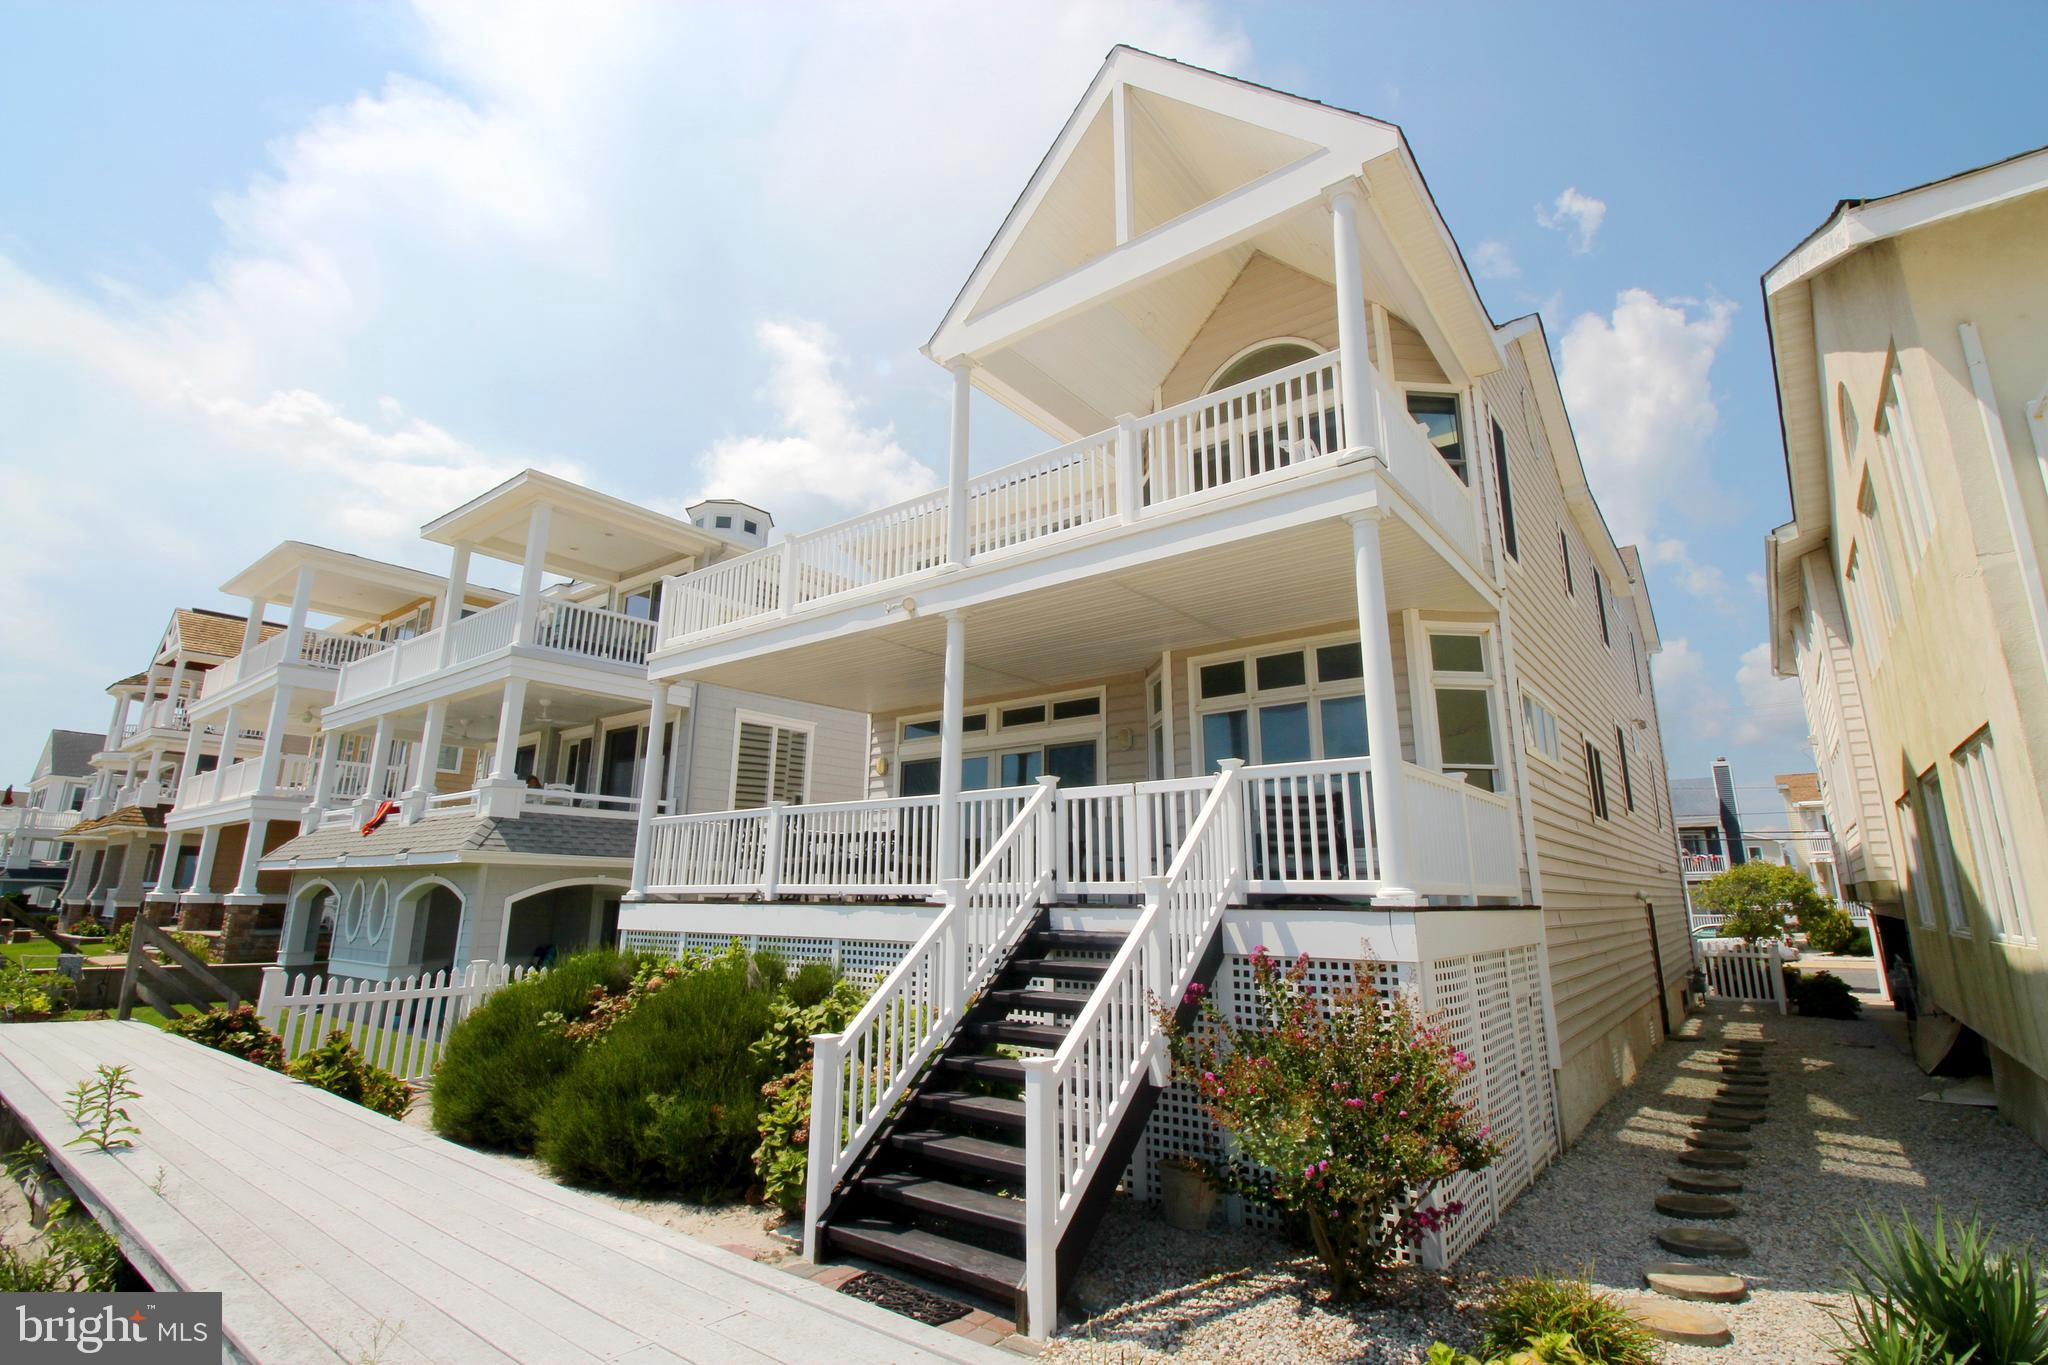 4533 CENTRAL AVENUE, OCEAN CITY, NJ 08226